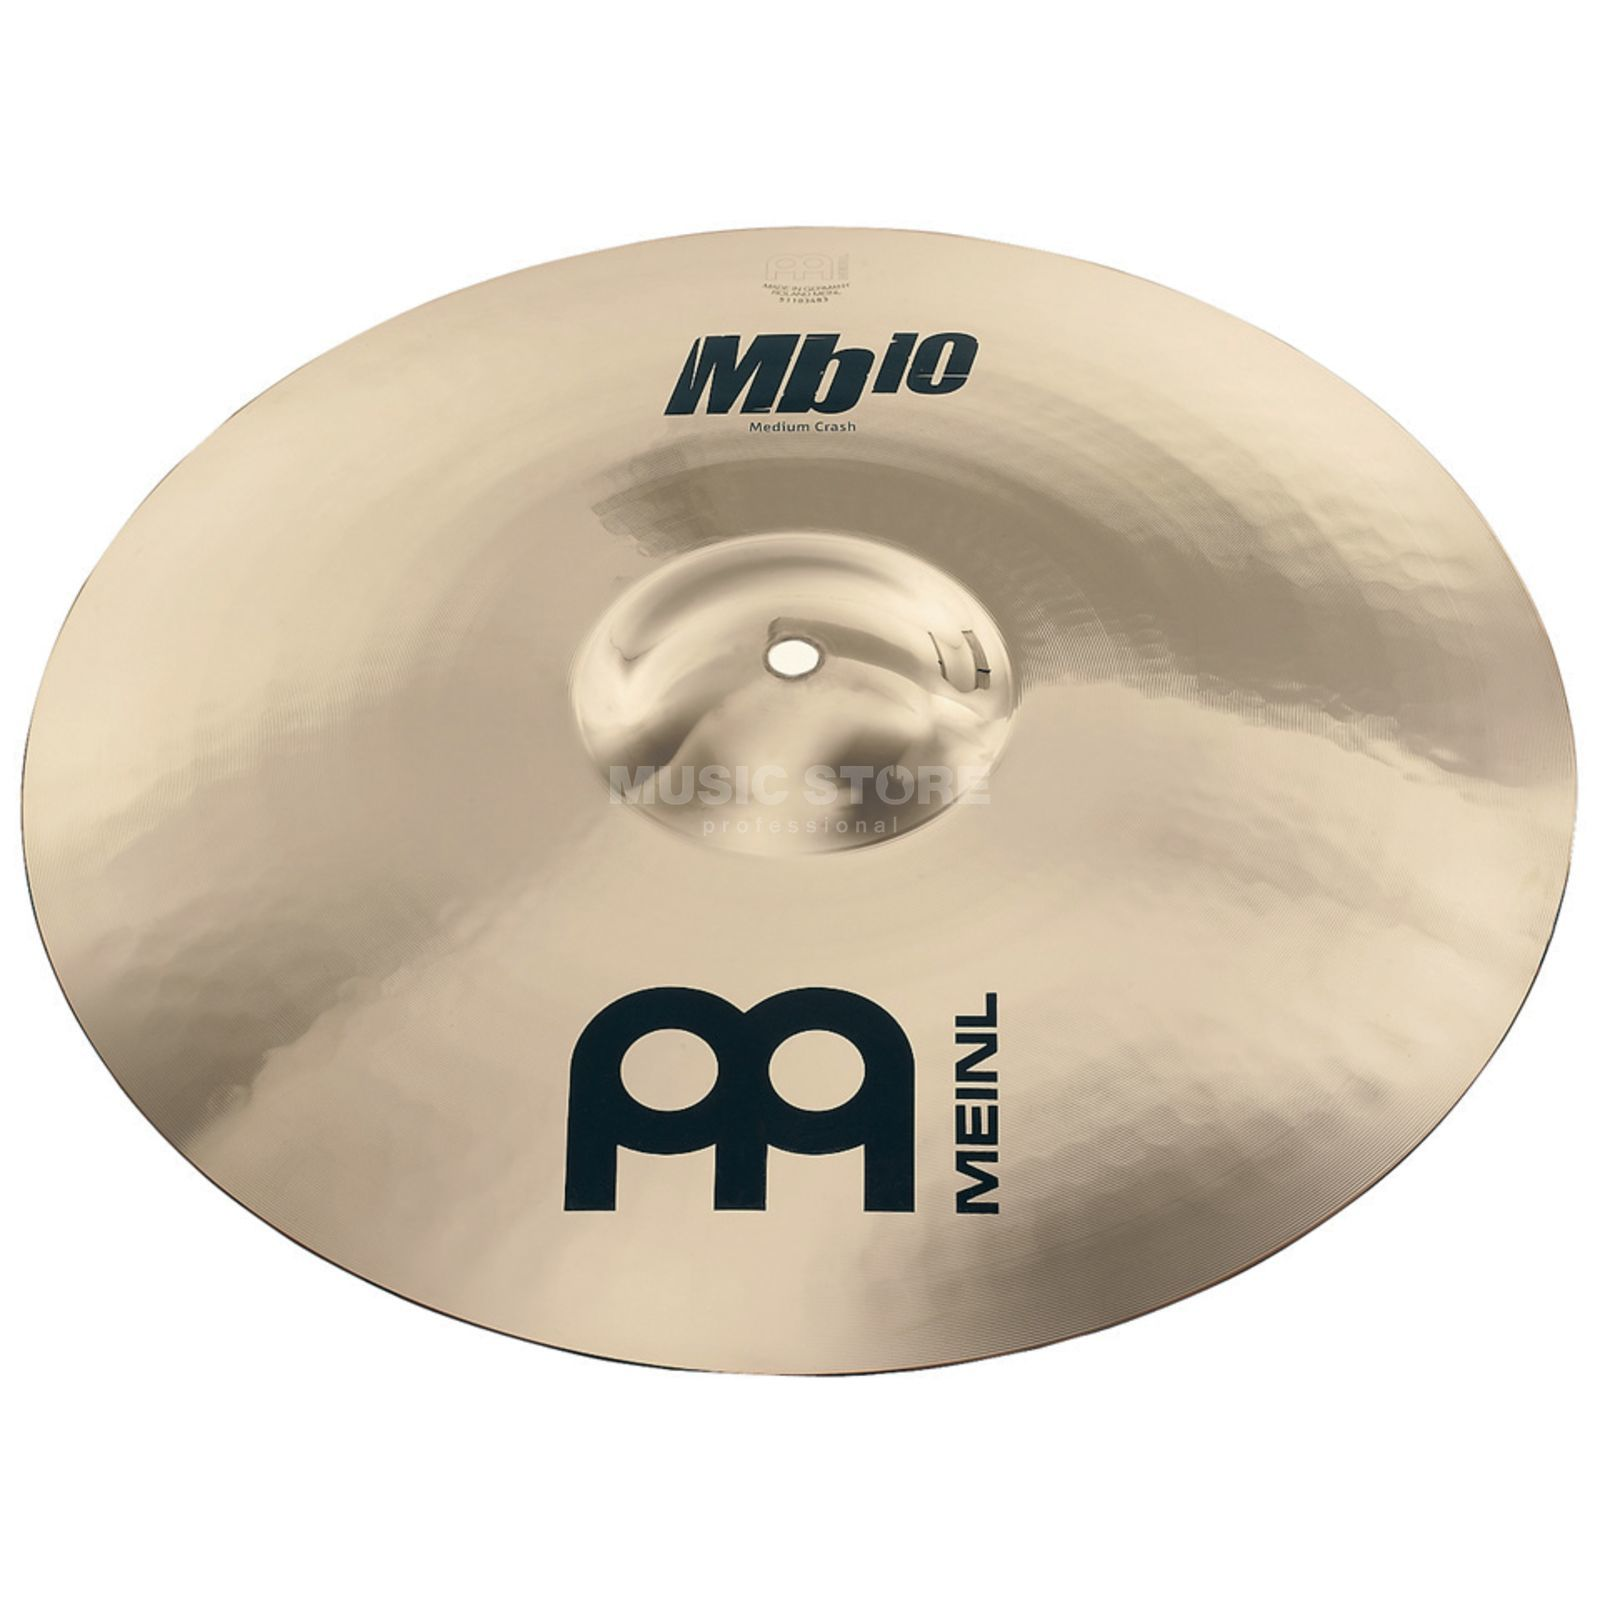 "Meinl MB10 Medium Crash 16"" MB10-16MC-B, Brilliant Finish Изображение товара"